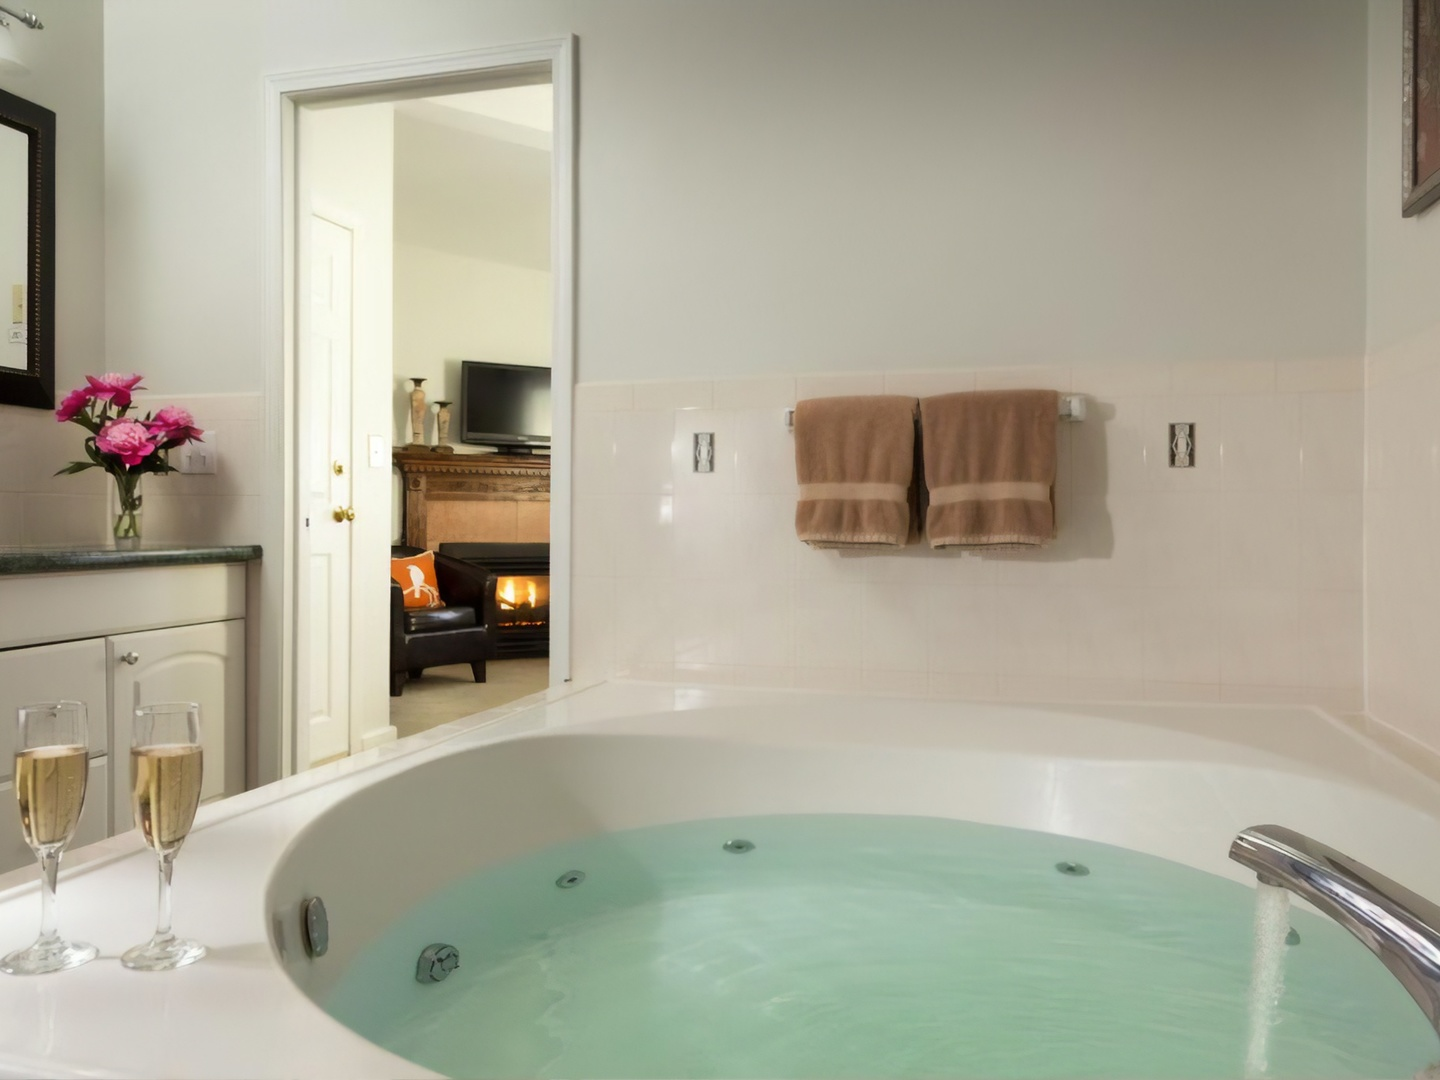 A large white tub sitting next to a sink at Beech Tree Inn & Cottage.